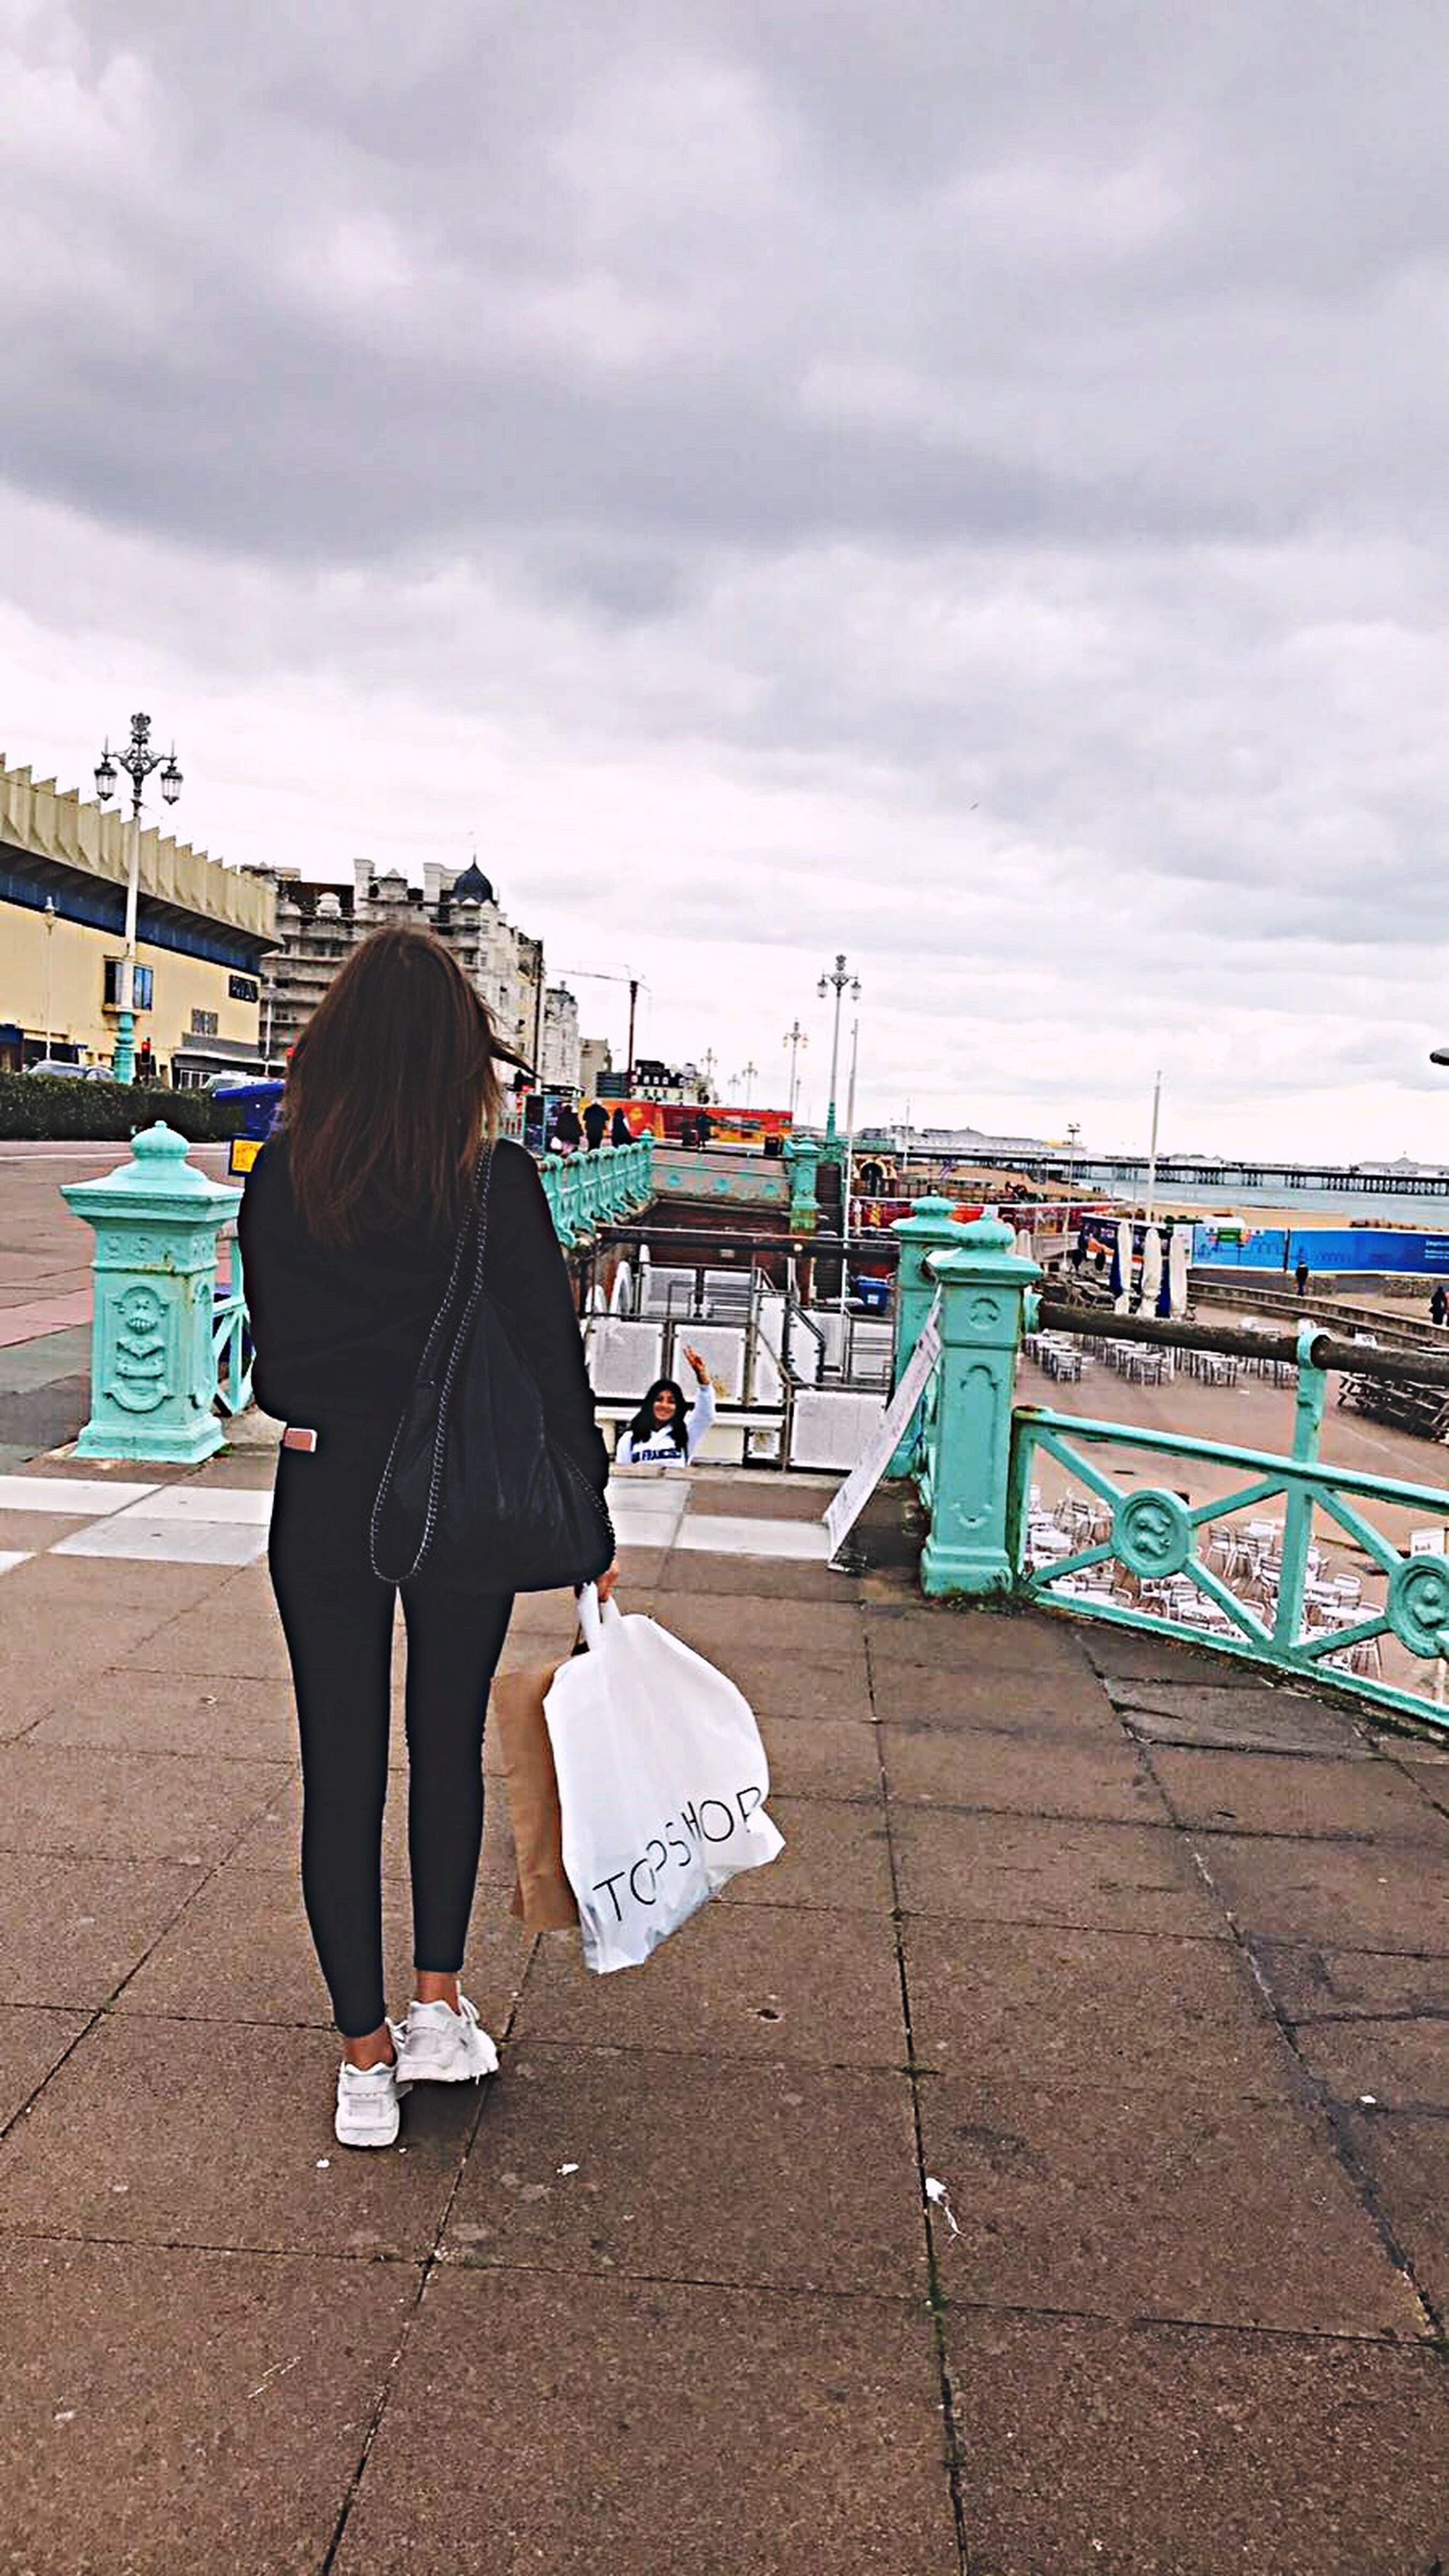 full length, sky, rear view, cloud - sky, standing, person, casual clothing, cloud, city, sea, togetherness, day, water, cloudy, ocean, harbor, jetty, outdoors